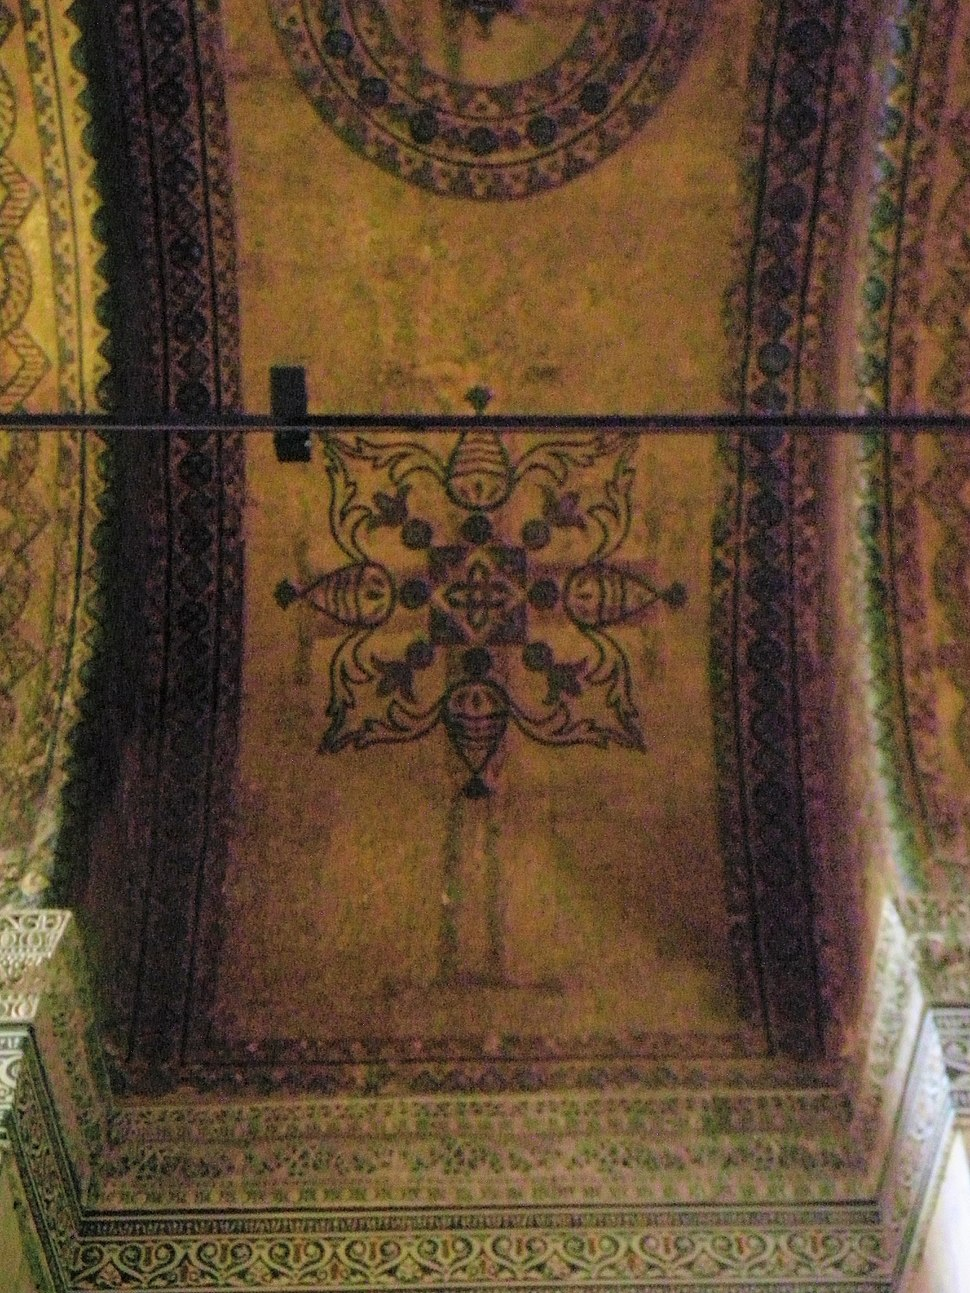 Ceiling decorations in Hagia Sofia